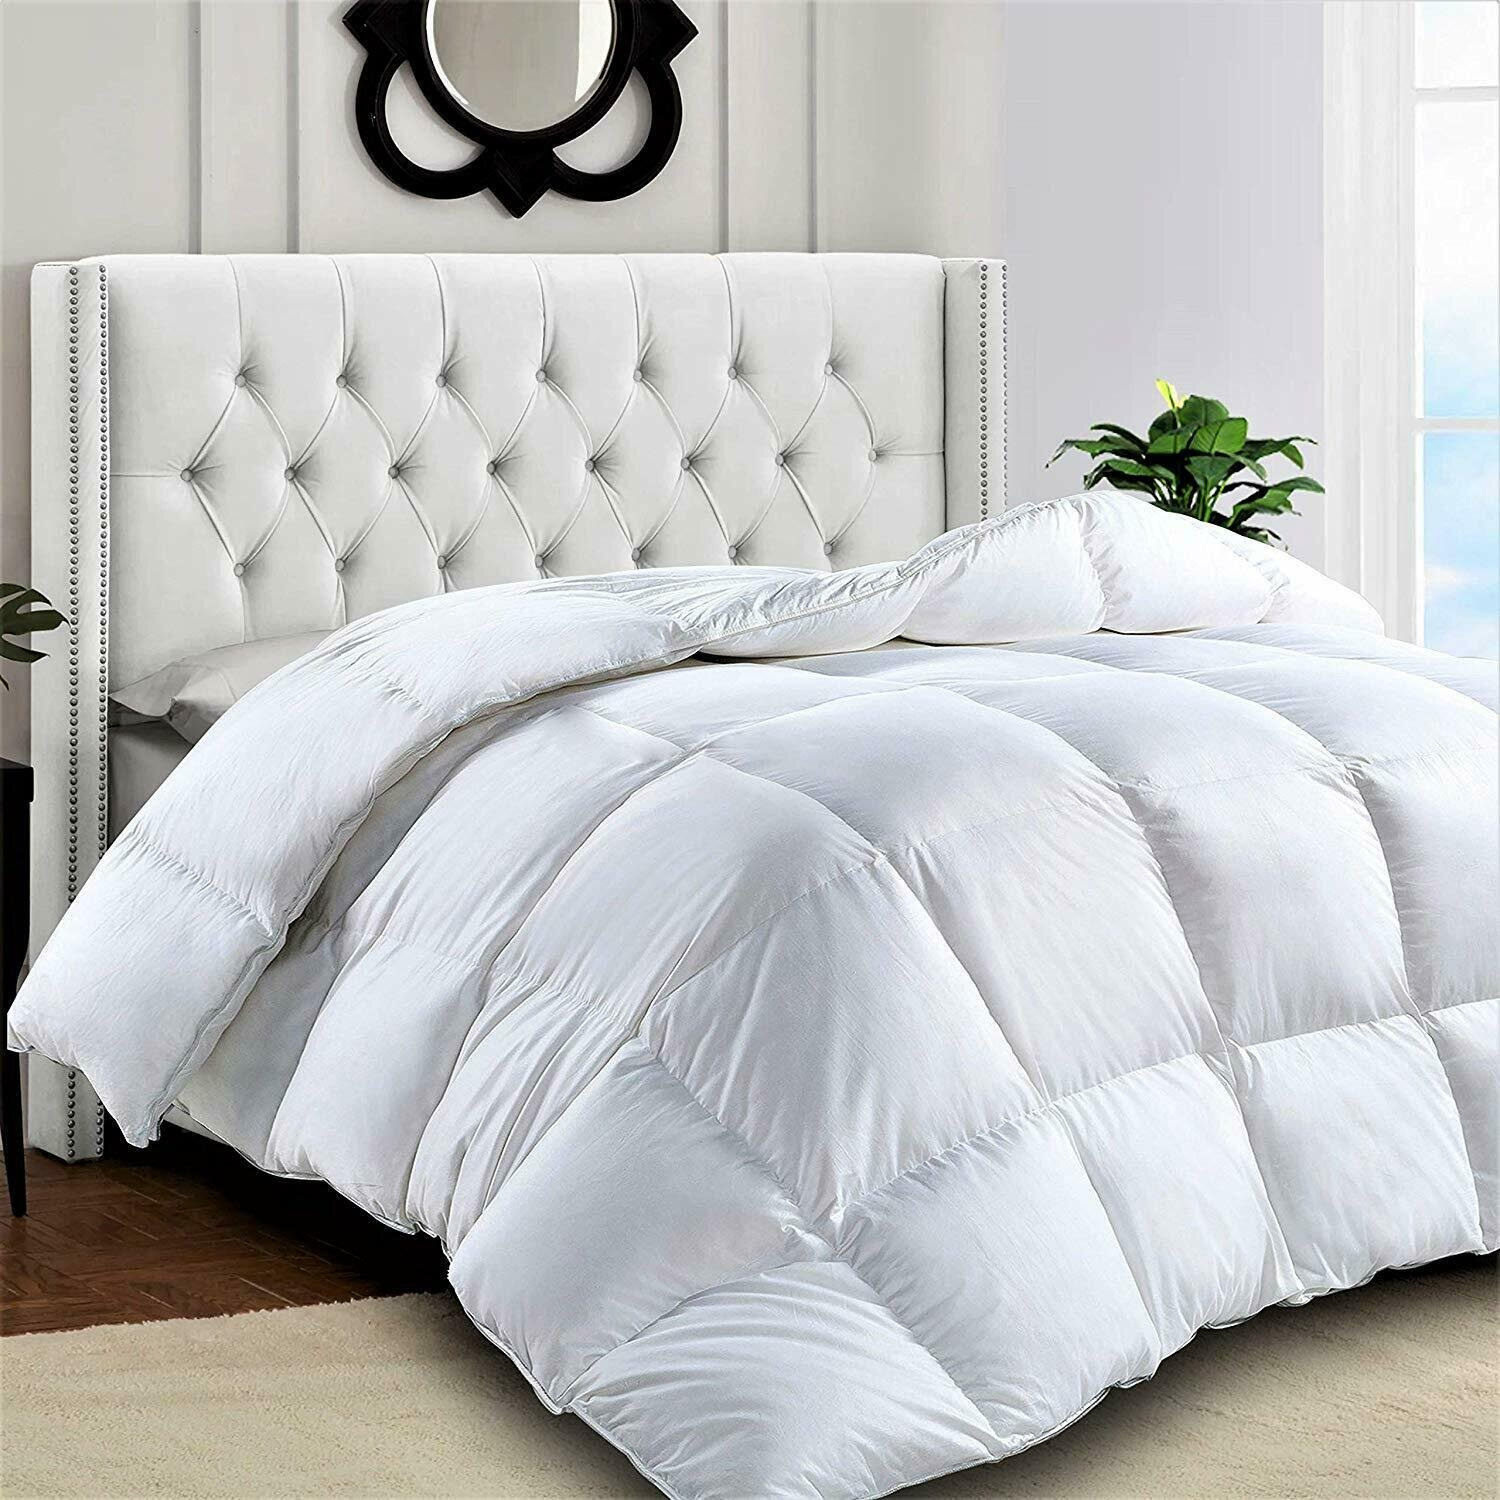 White Down Comforters Duvet Inserts Free Shipping Over 35 Wayfair